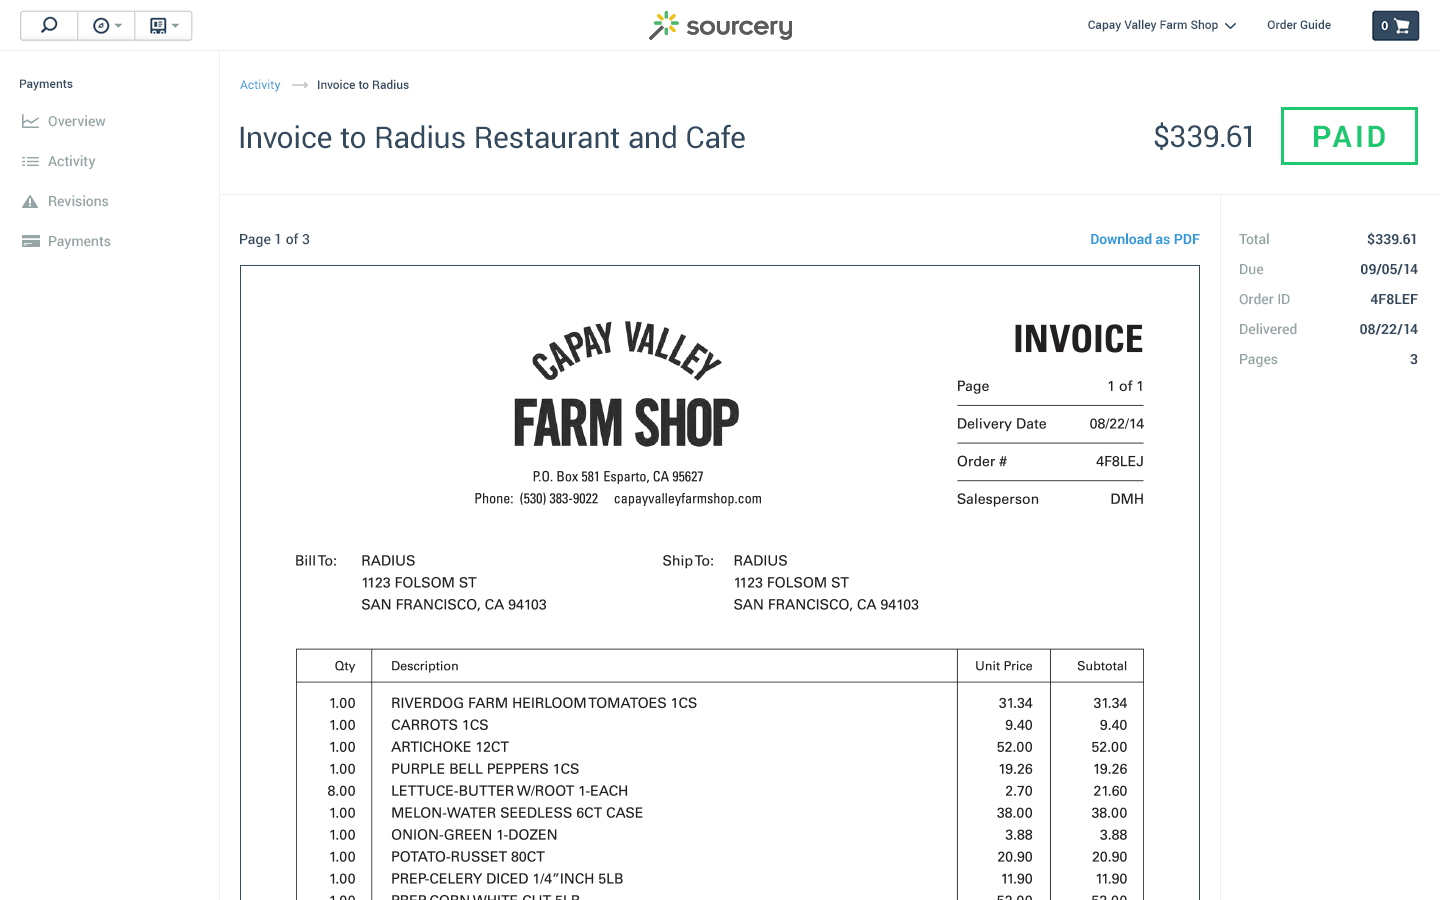 Opportunitycaus  Outstanding Wholesale Food Vendor Invoicing  Sourcery With Remarkable Screenshot Of Vendor Storage With Alluring How To Get A Read Receipt In Gmail Also No Receipt In Addition Holiday Inn Receipt And Jcpenney Return Without Receipt As Well As Receipts By Wave Additionally Receipts Meaning From Getsourcerycom With Opportunitycaus  Remarkable Wholesale Food Vendor Invoicing  Sourcery With Alluring Screenshot Of Vendor Storage And Outstanding How To Get A Read Receipt In Gmail Also No Receipt In Addition Holiday Inn Receipt From Getsourcerycom